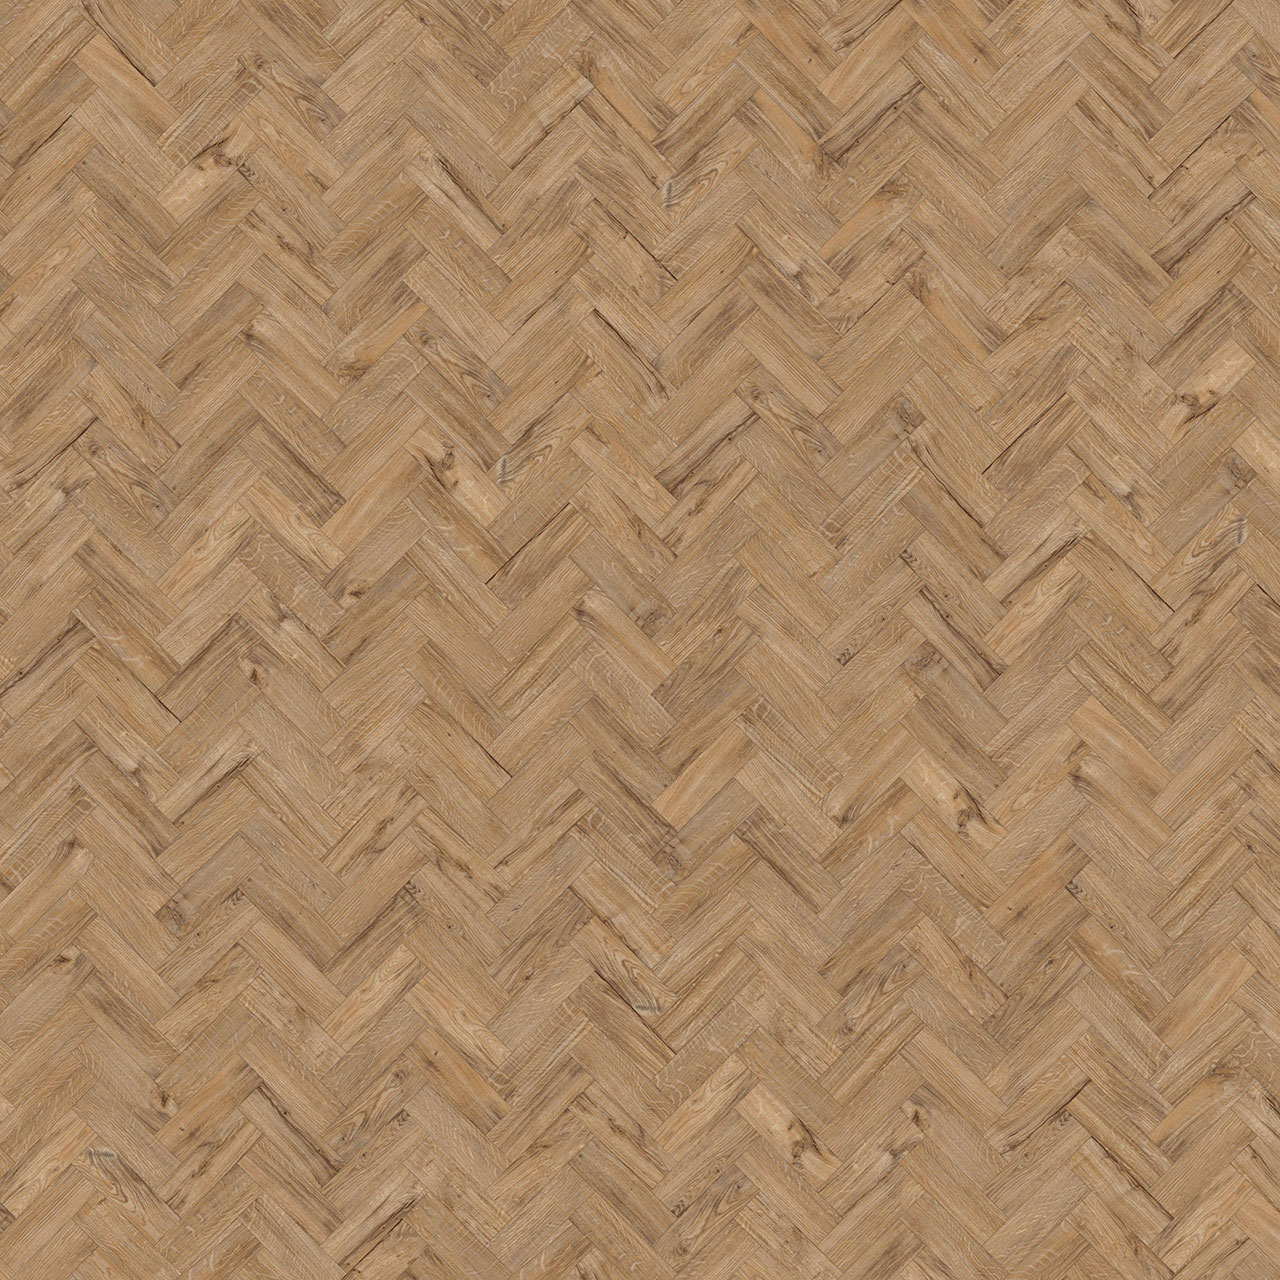 Amtico Spacia Royal Oak Parquet 3x9 SS5W2530